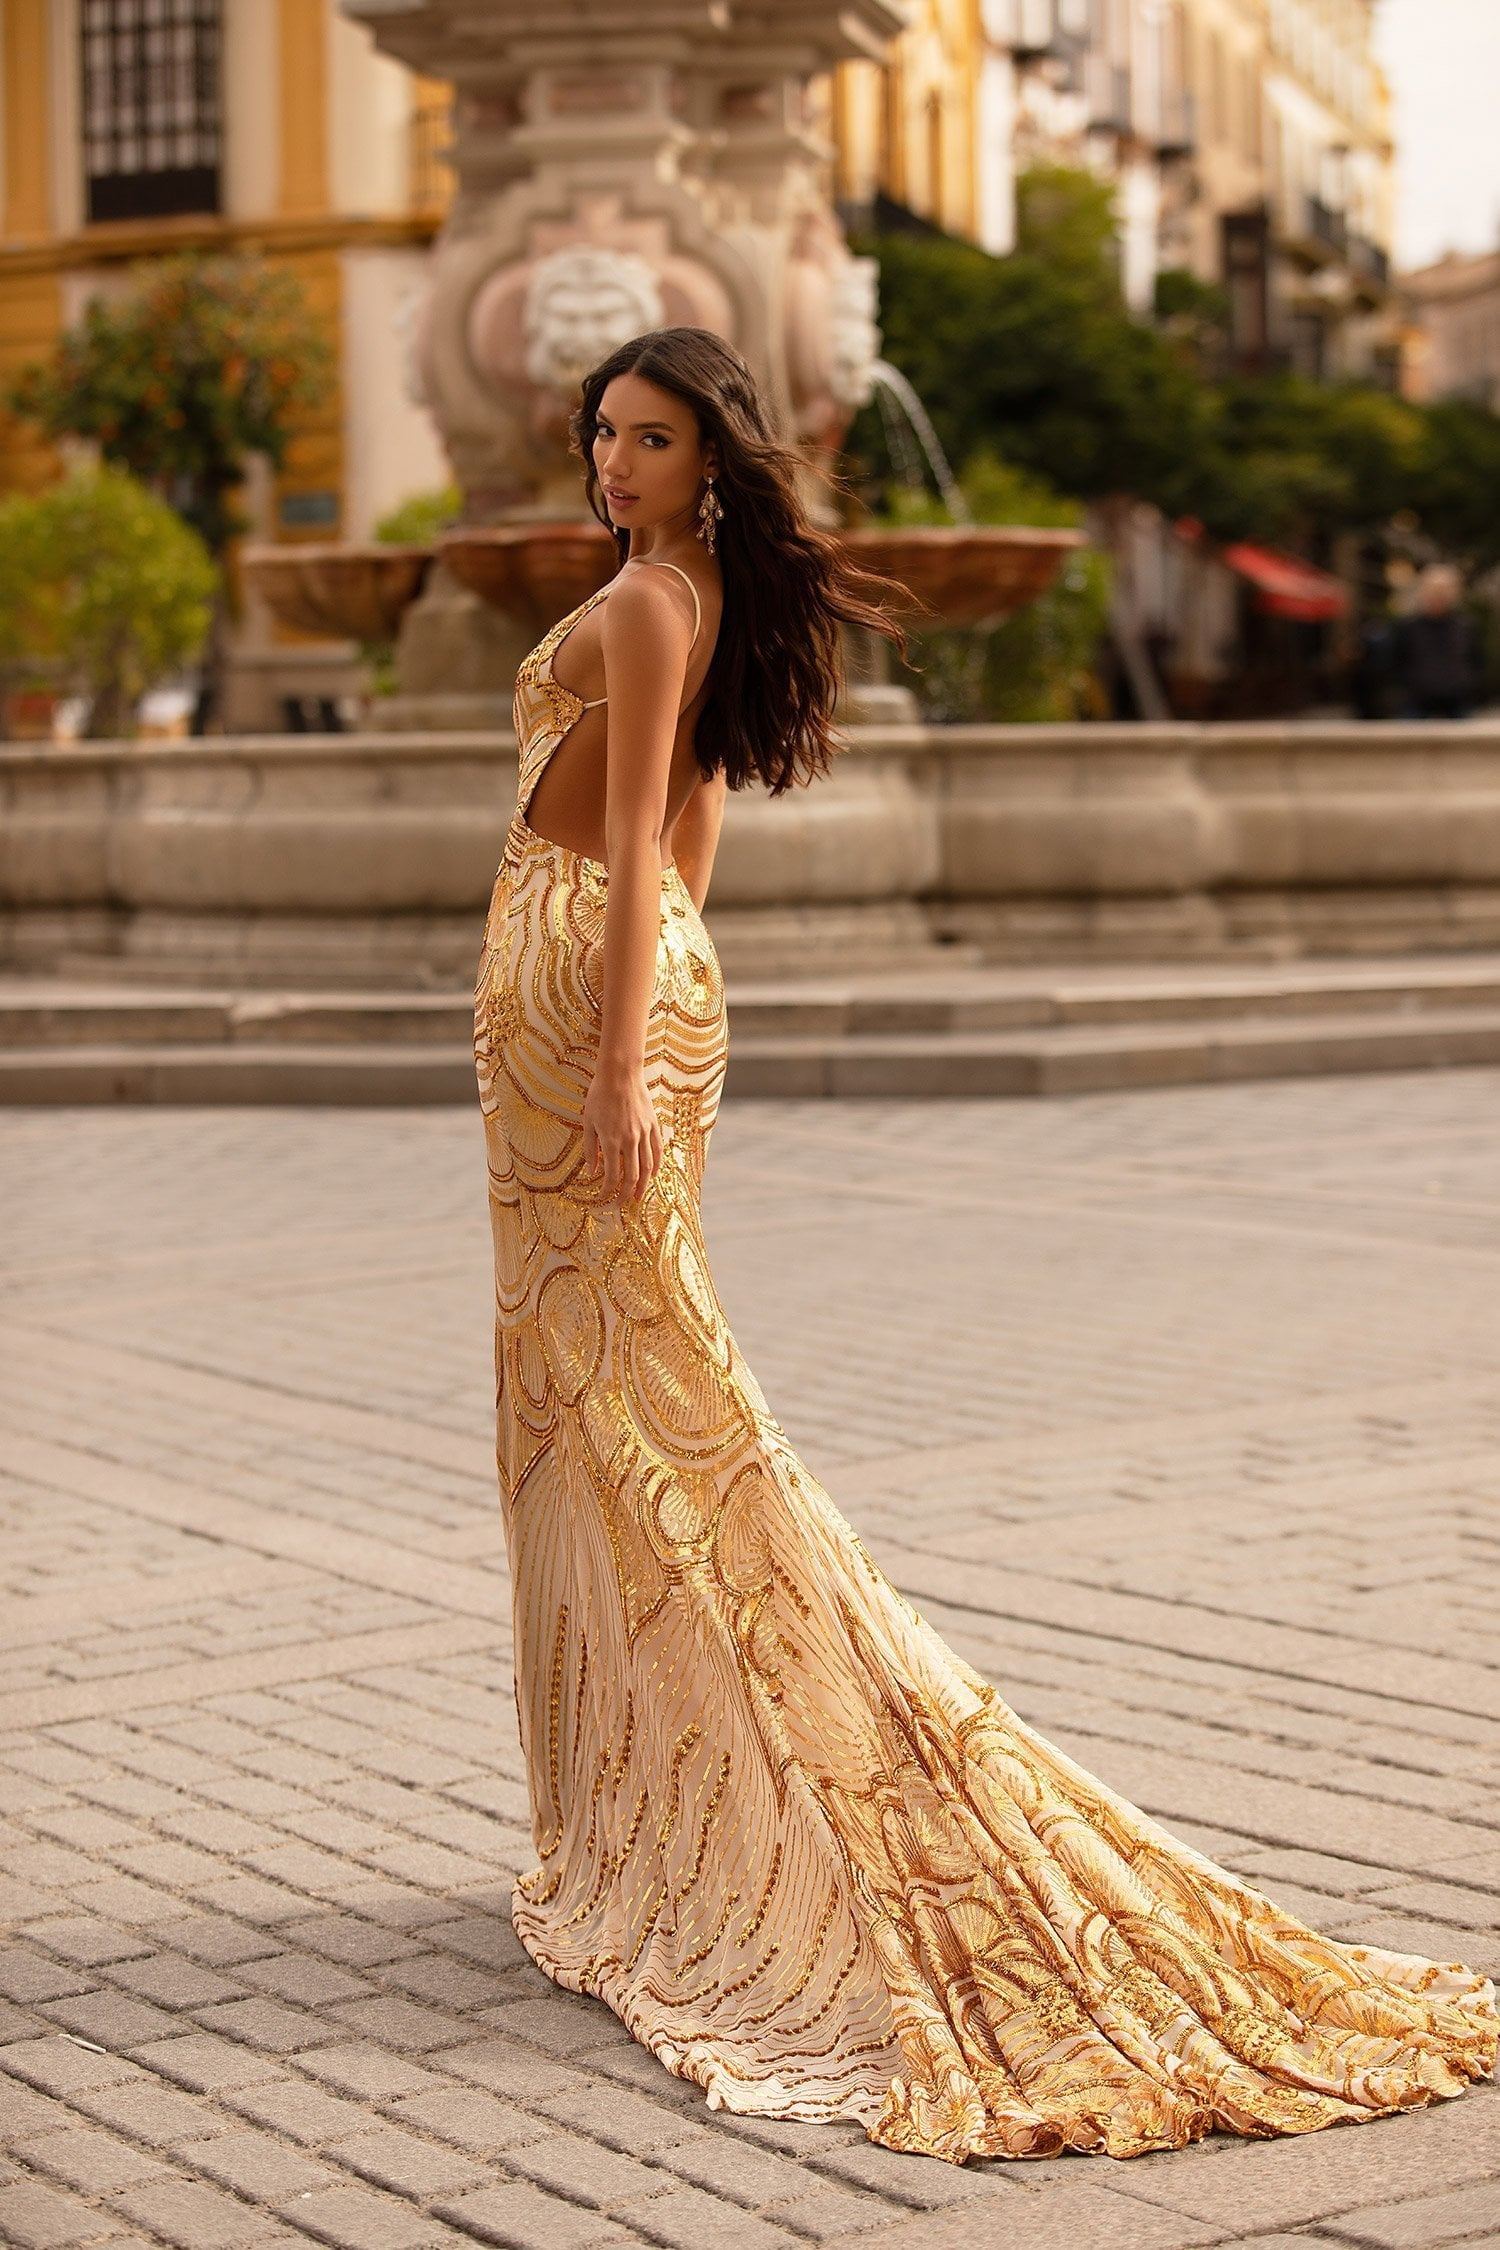 Rianata - Gold Deep V-Neck Patterned Sequin Gown with Low Back